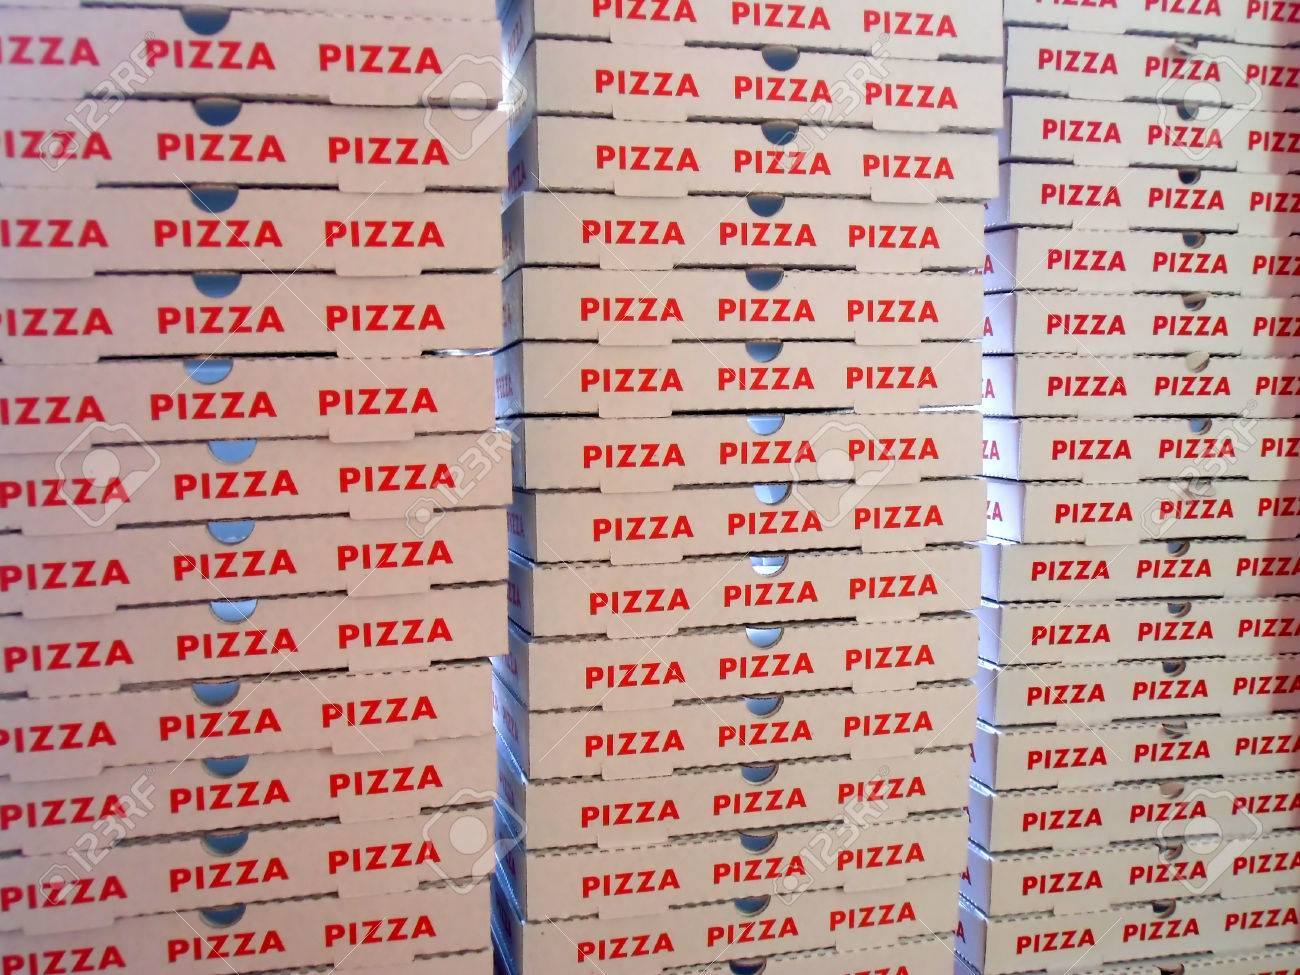 Royalty Stack Free Boxes Image Of Stock Pizza Image 25923313 Photo And Picture